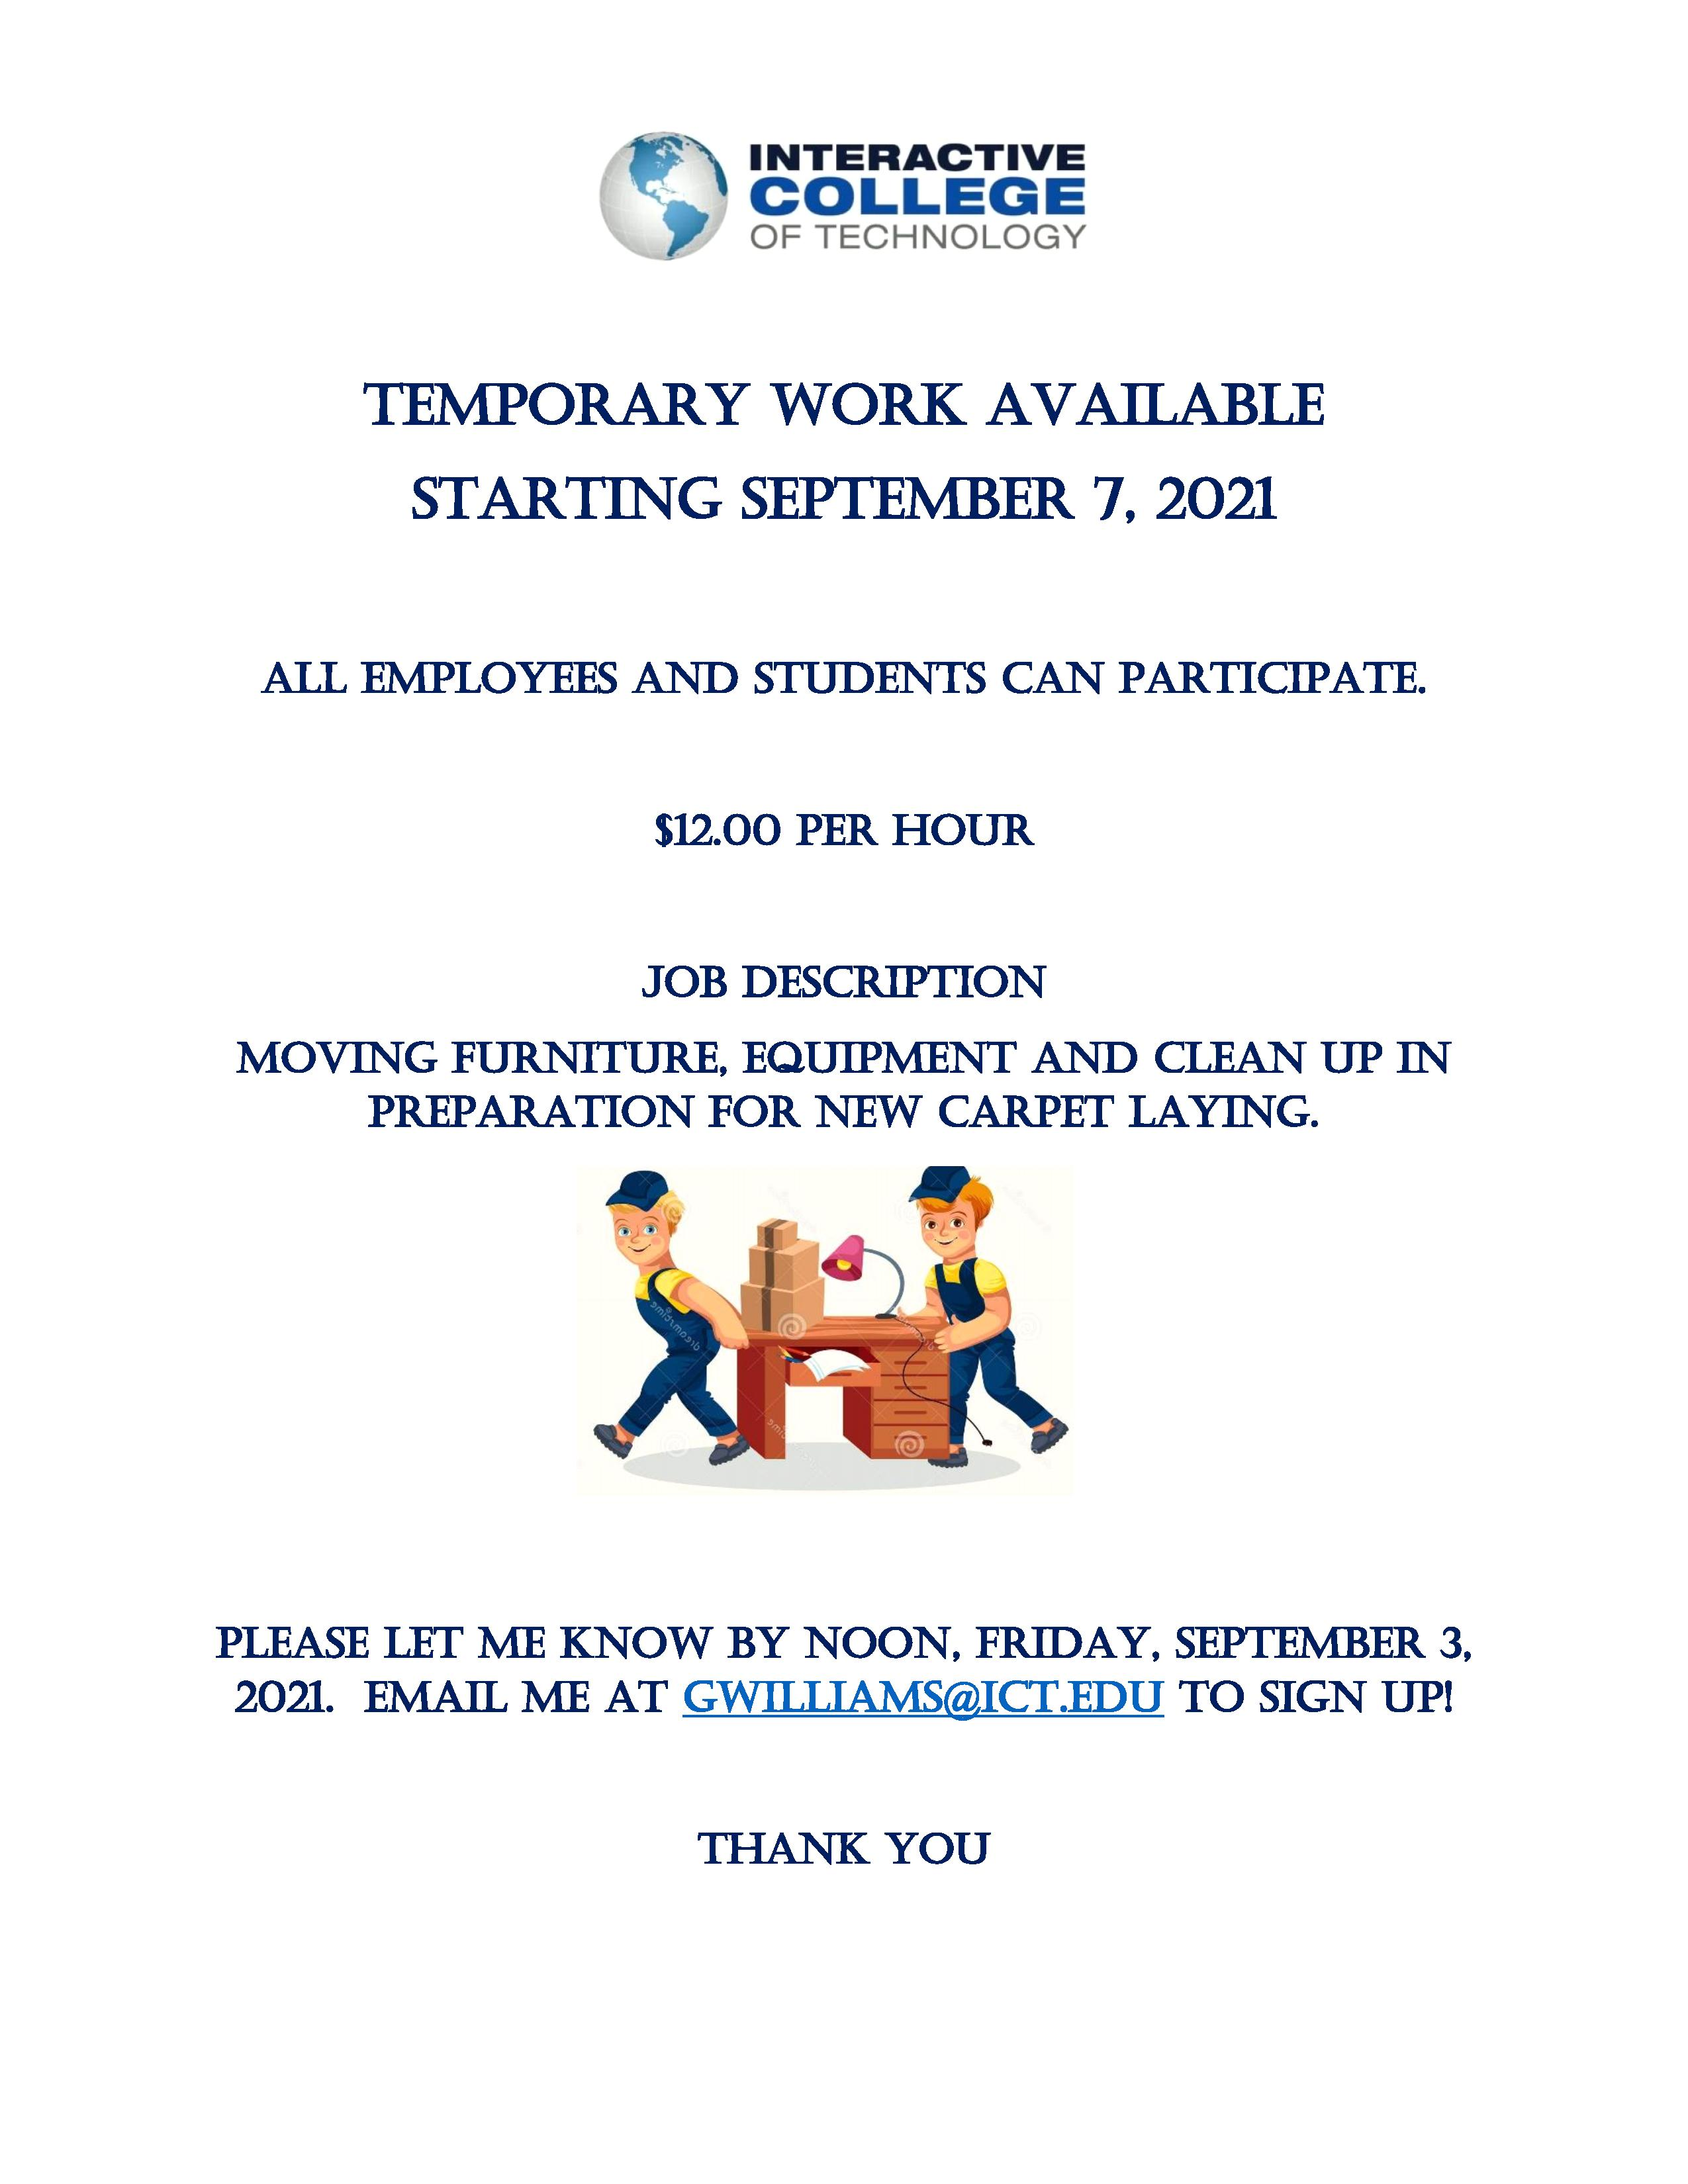 Work available